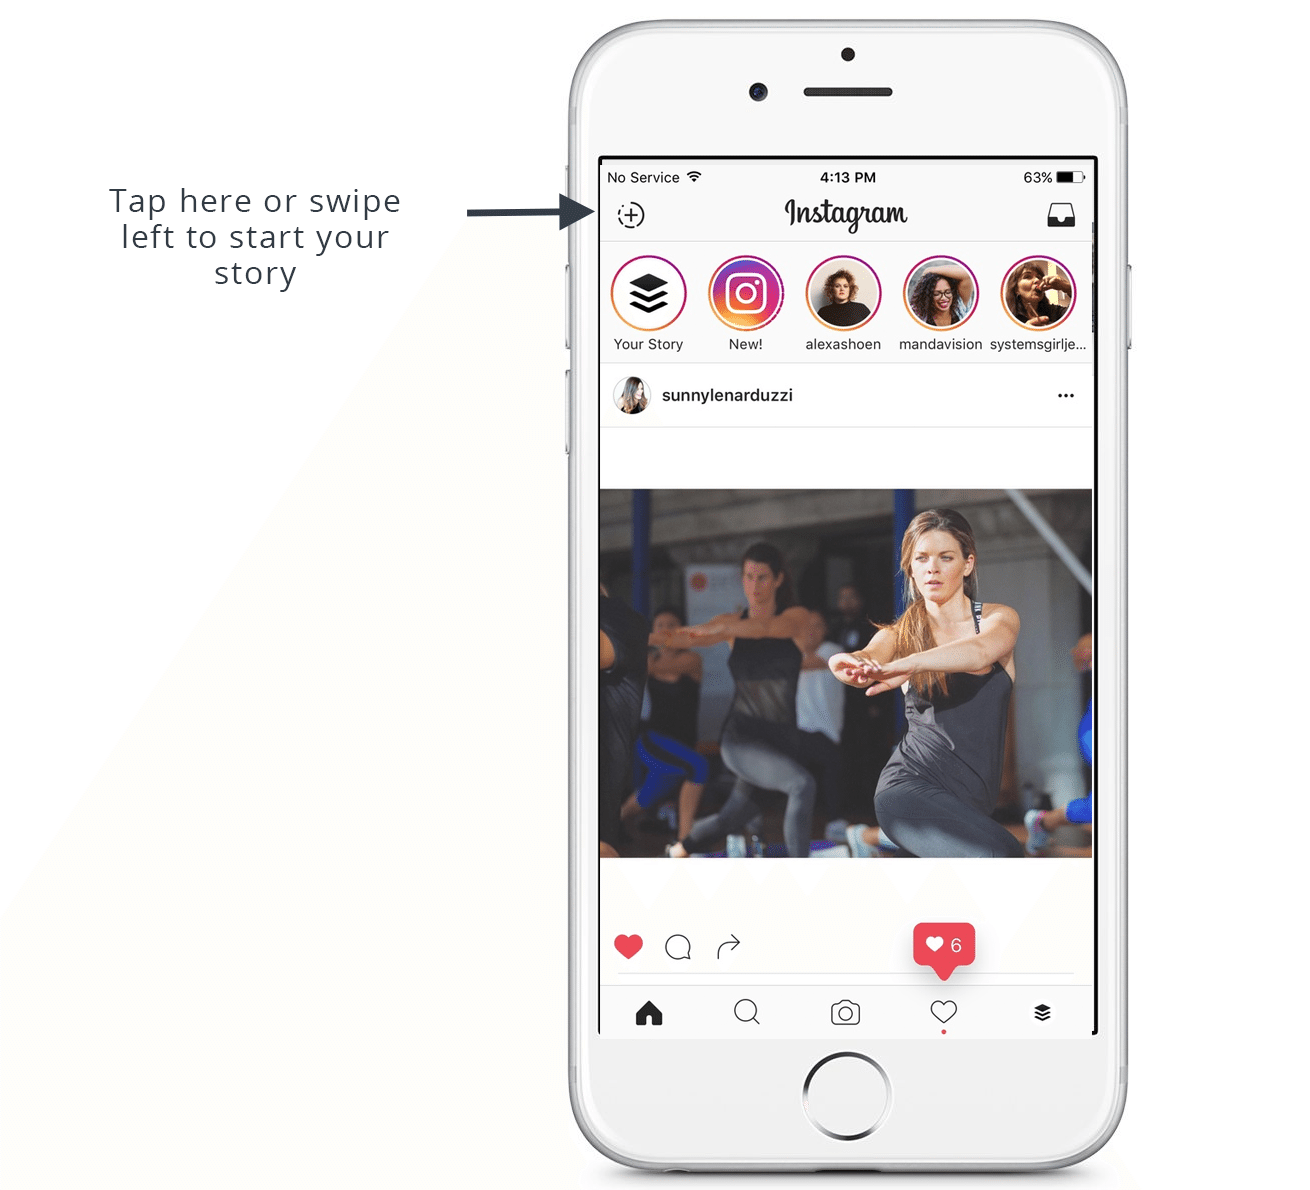 Use Instagram Stories to drive traffic and reach as a personal trainer